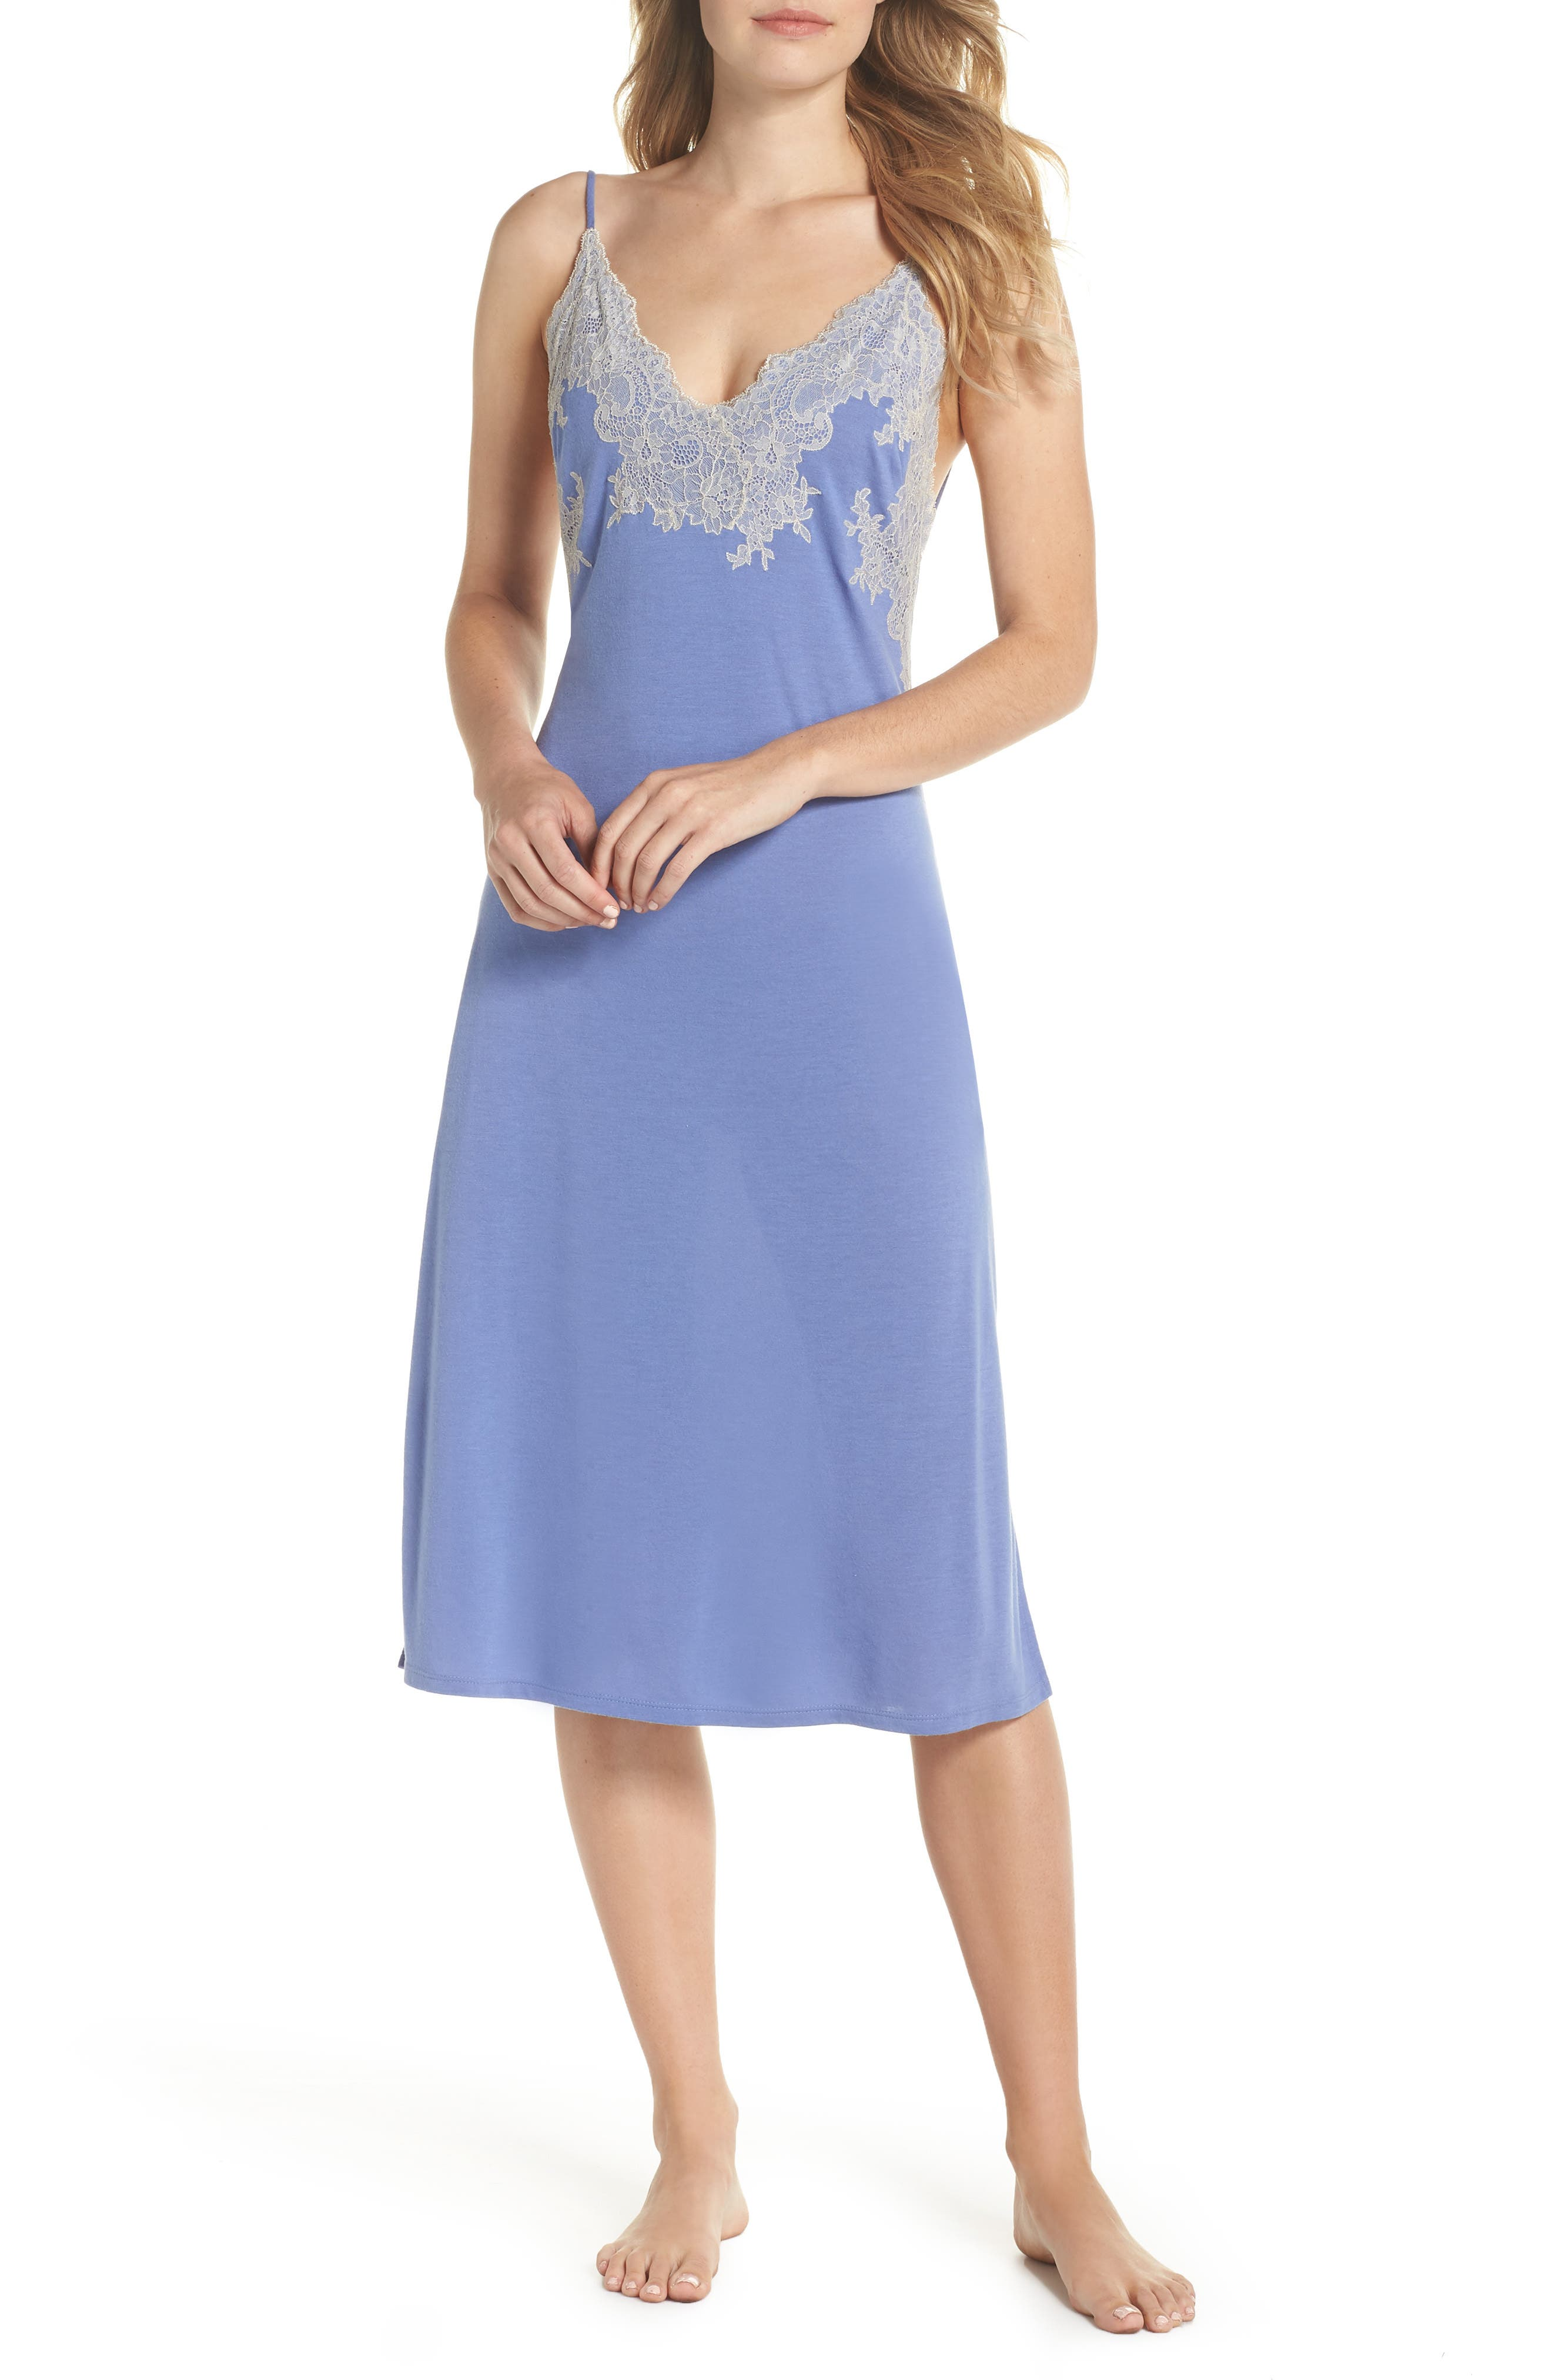 Luxe Shangri-La Nightgown,                             Main thumbnail 1, color,                             Wedgewood